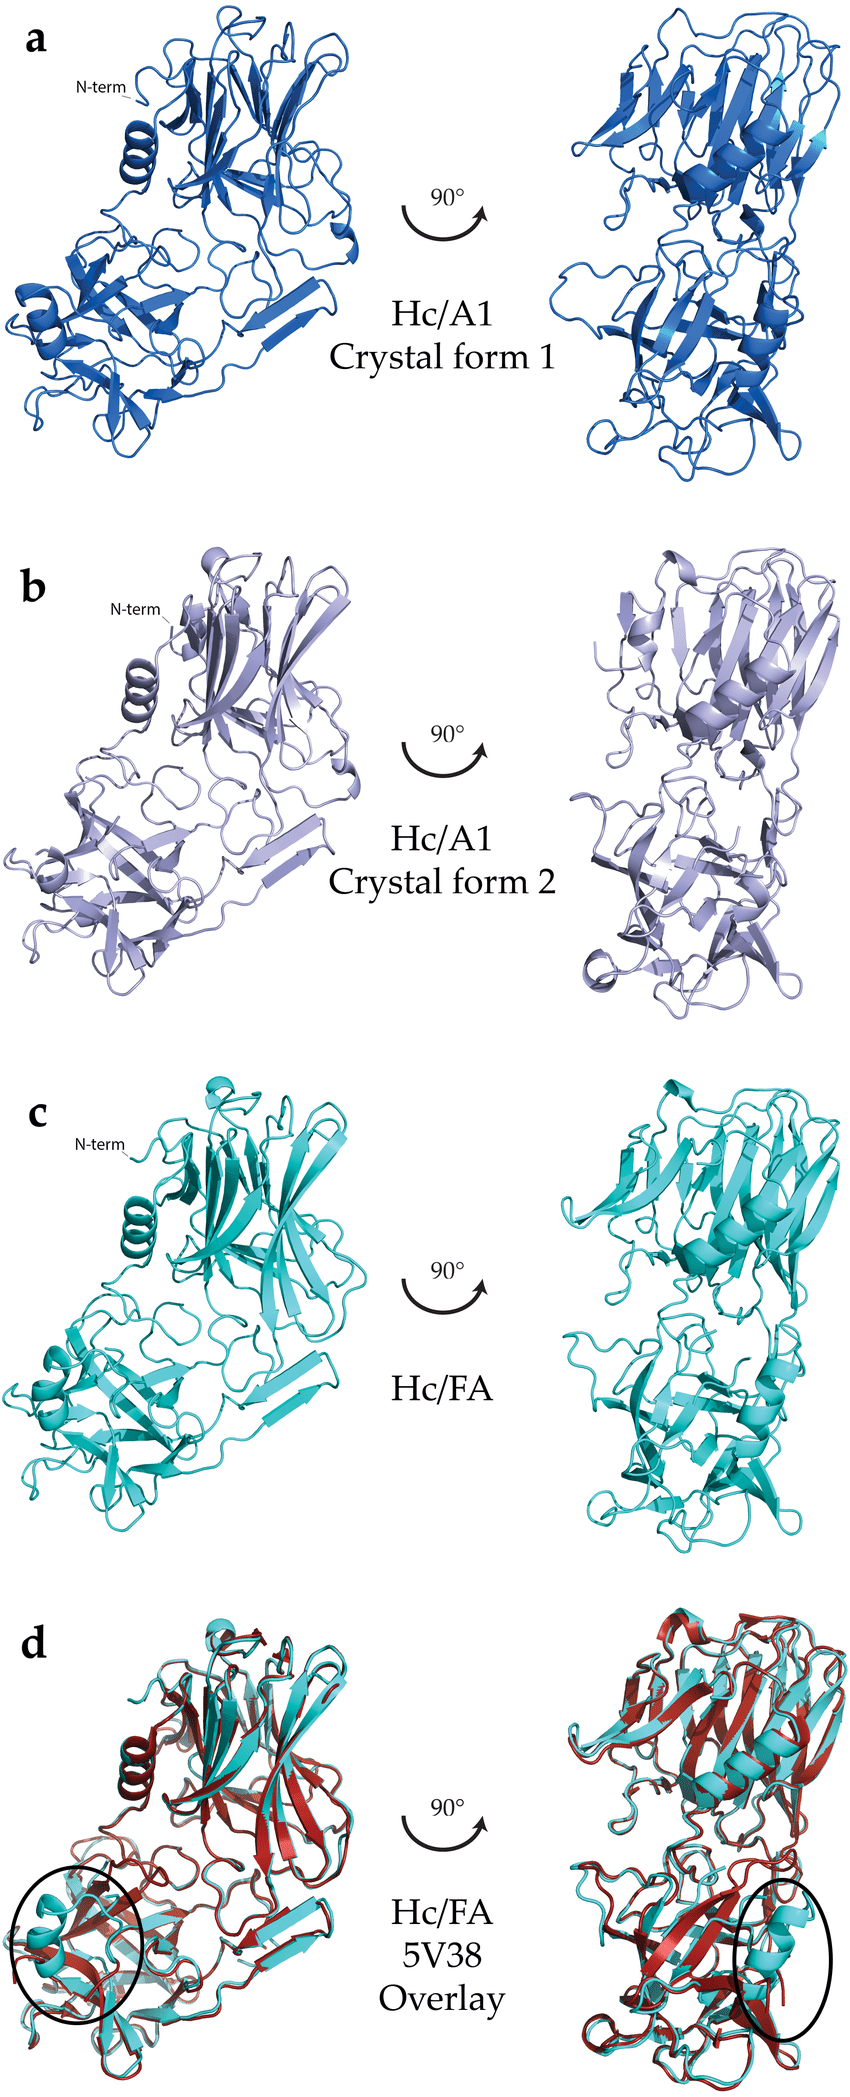 hight resolution of crystal structures of hc domains a hc a1 domain crystal form